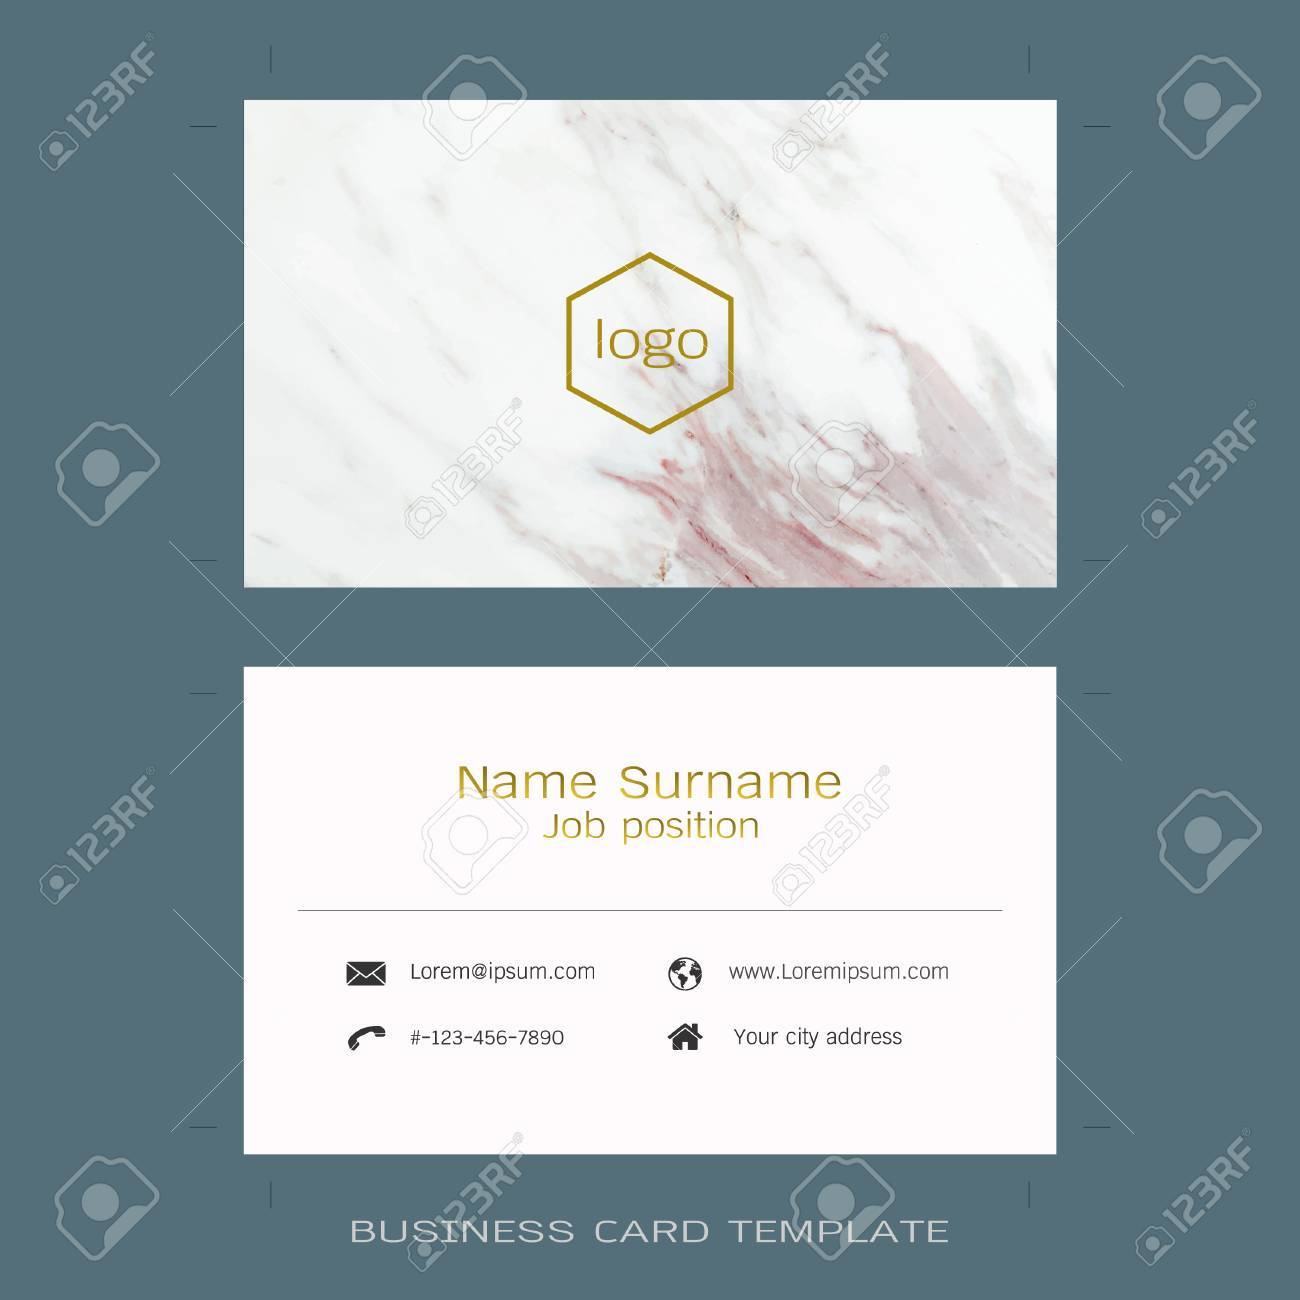 Modern designer business card layout templates marble texture imagens modern designer business card layout templates marble texture background easy to use by print a special offer or add your own logo images reheart Images